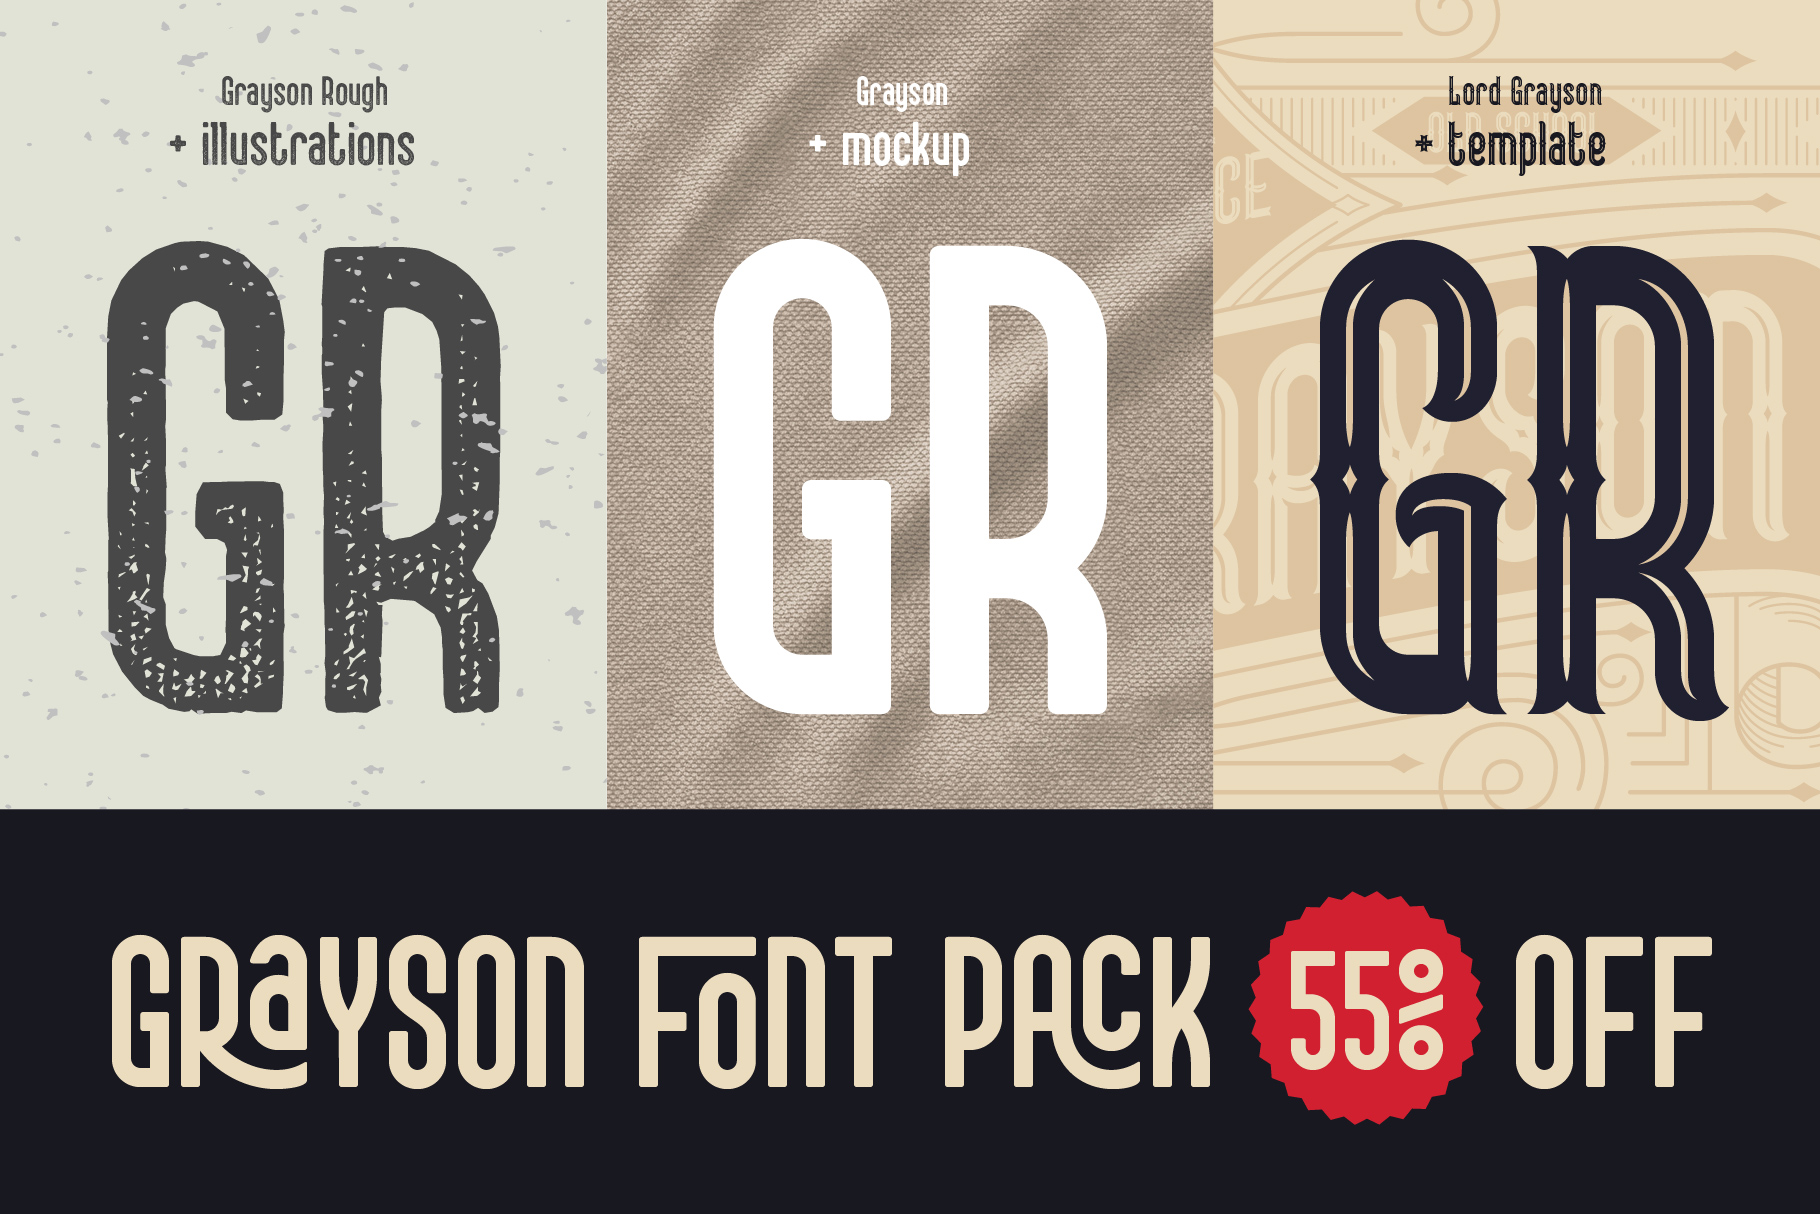 Grayson Font Pack. 55 OFF! example image 1